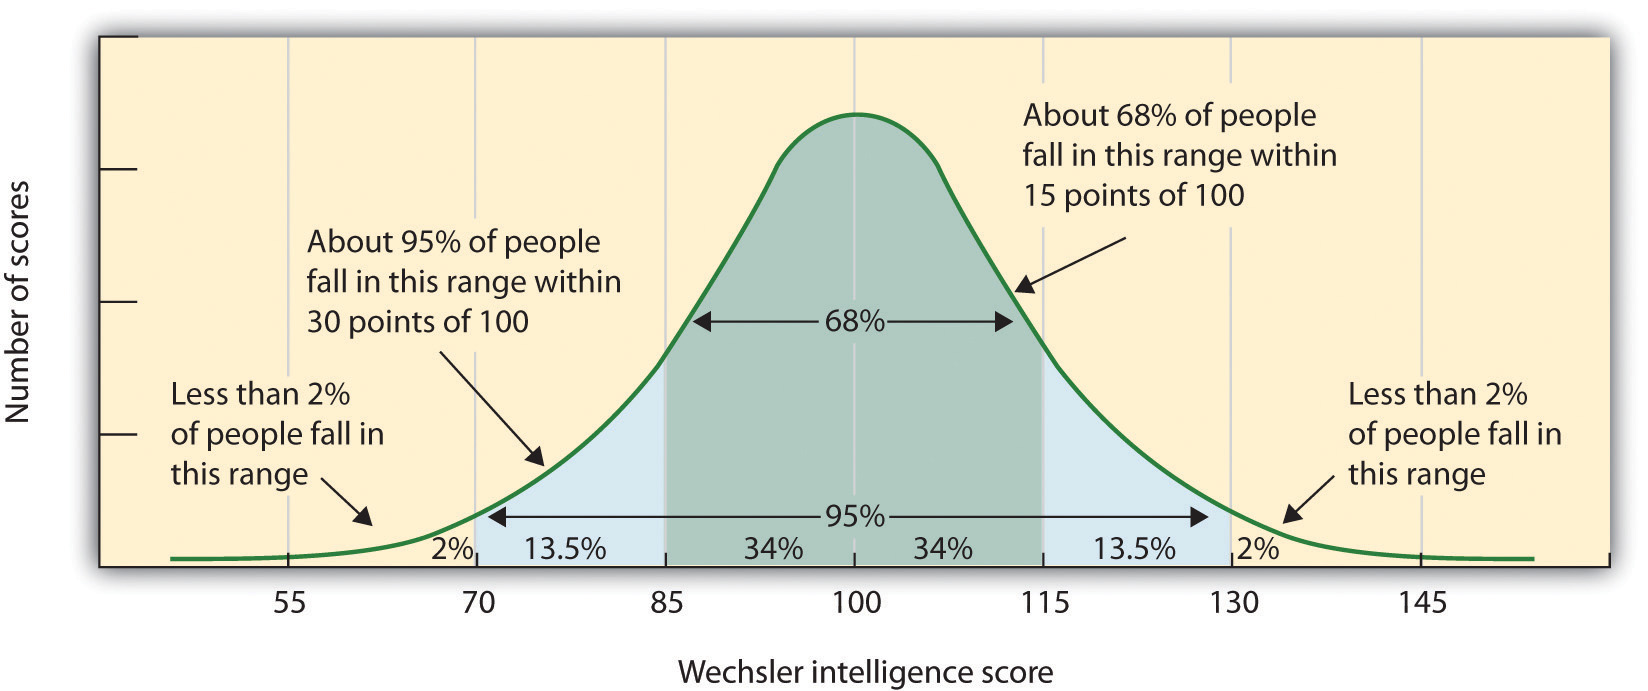 The normal distribution of IQ scores in the general population shows that most people have about average intelligence, while very few have extremely high or extremely low intelligence.